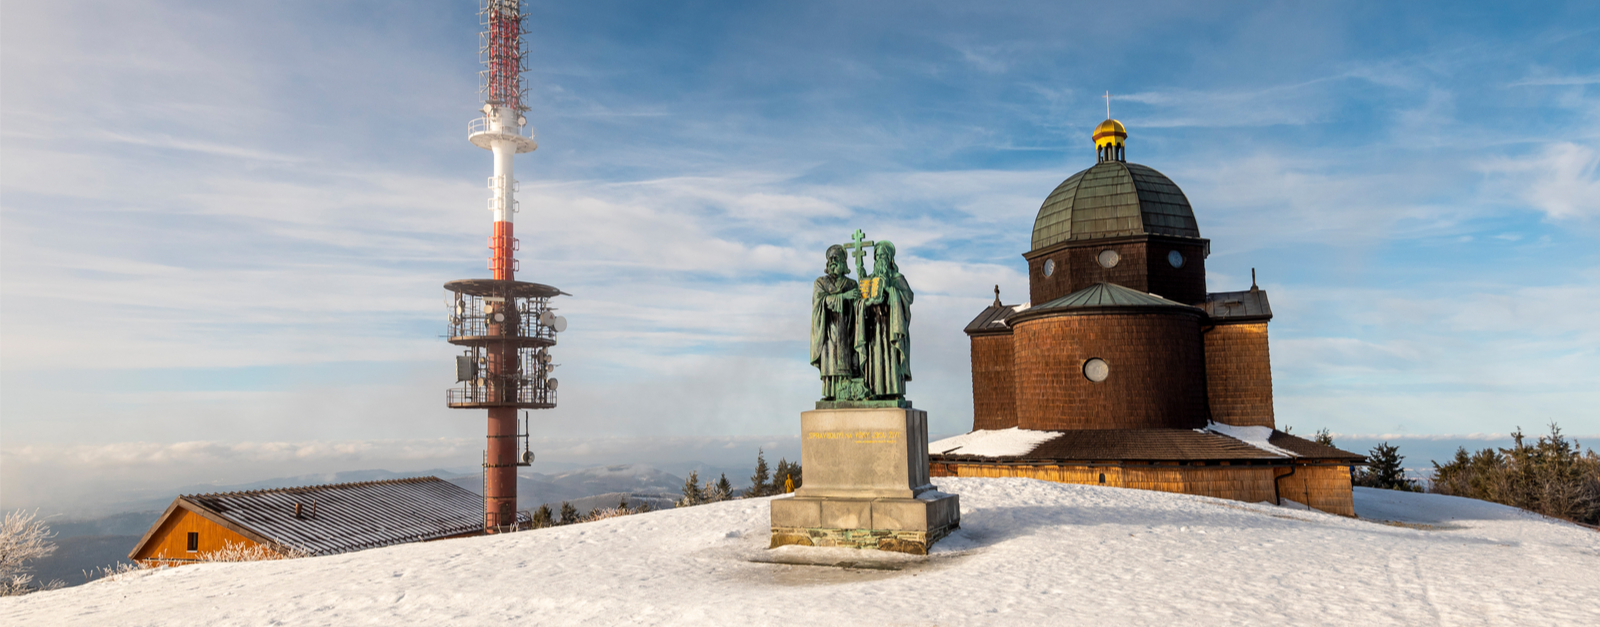 Visiting Radhošť in the Czech Republic: The Mountain, The Beer, The Legend